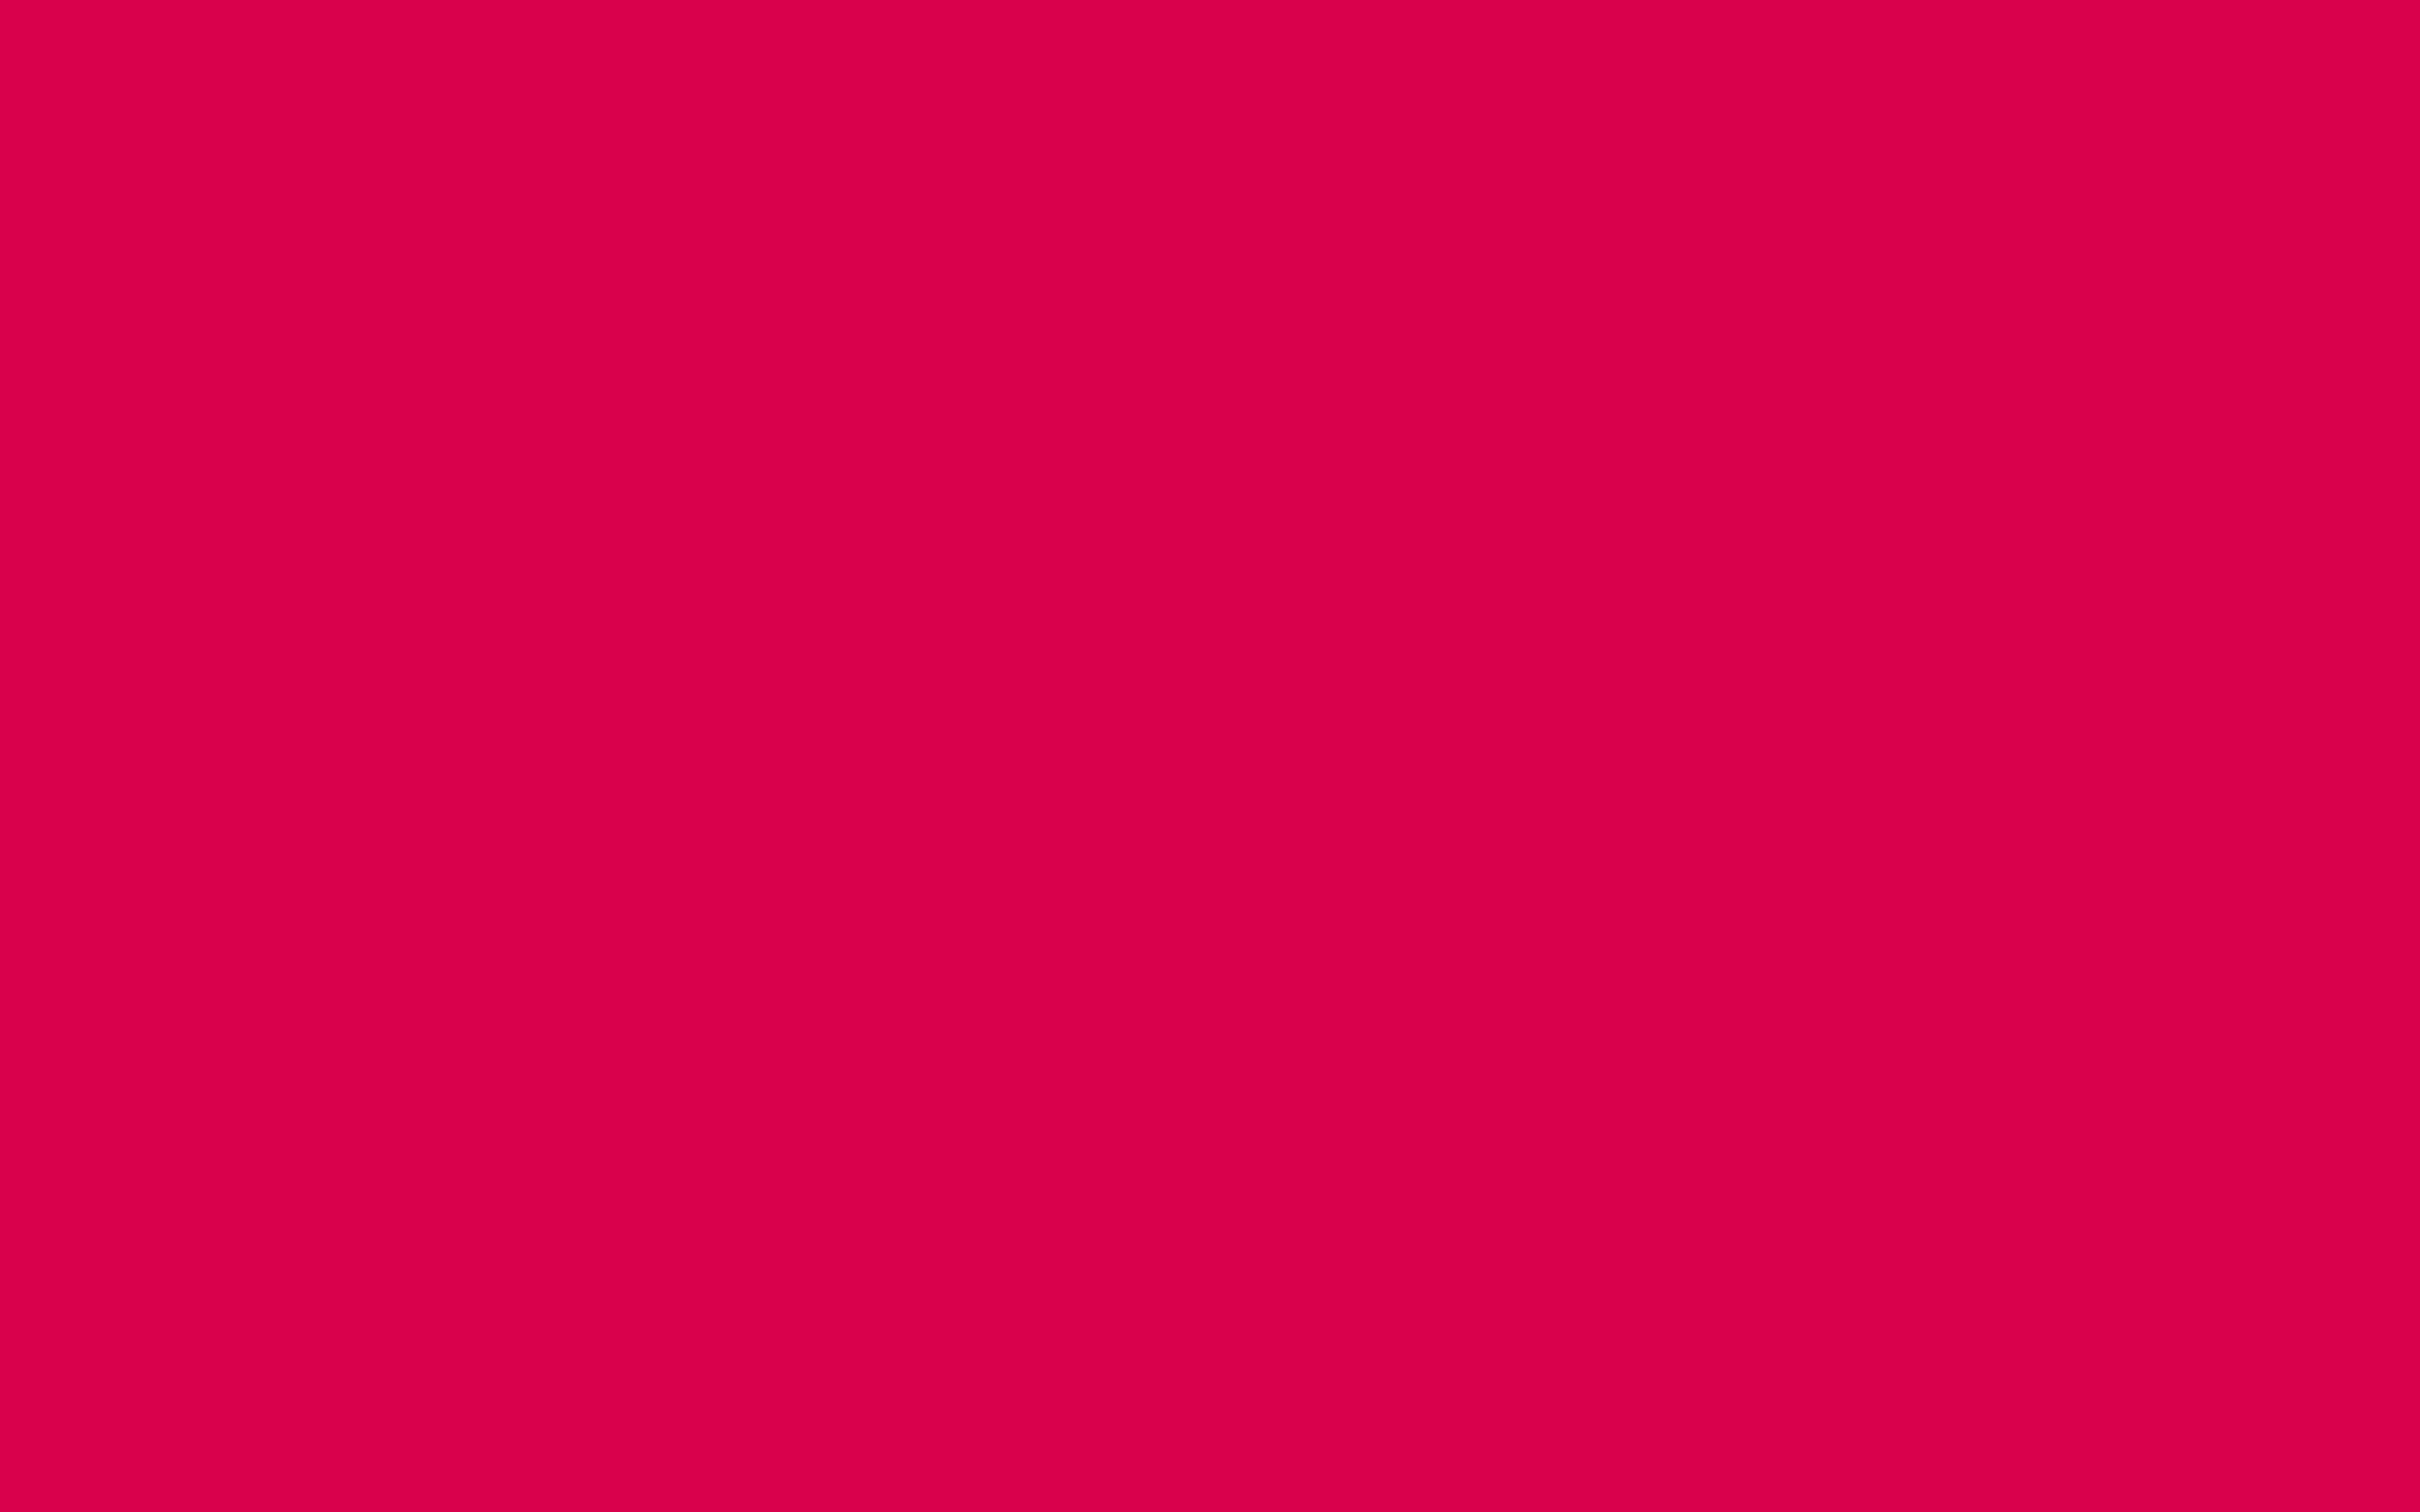 2880x1800 UA Red Solid Color Background